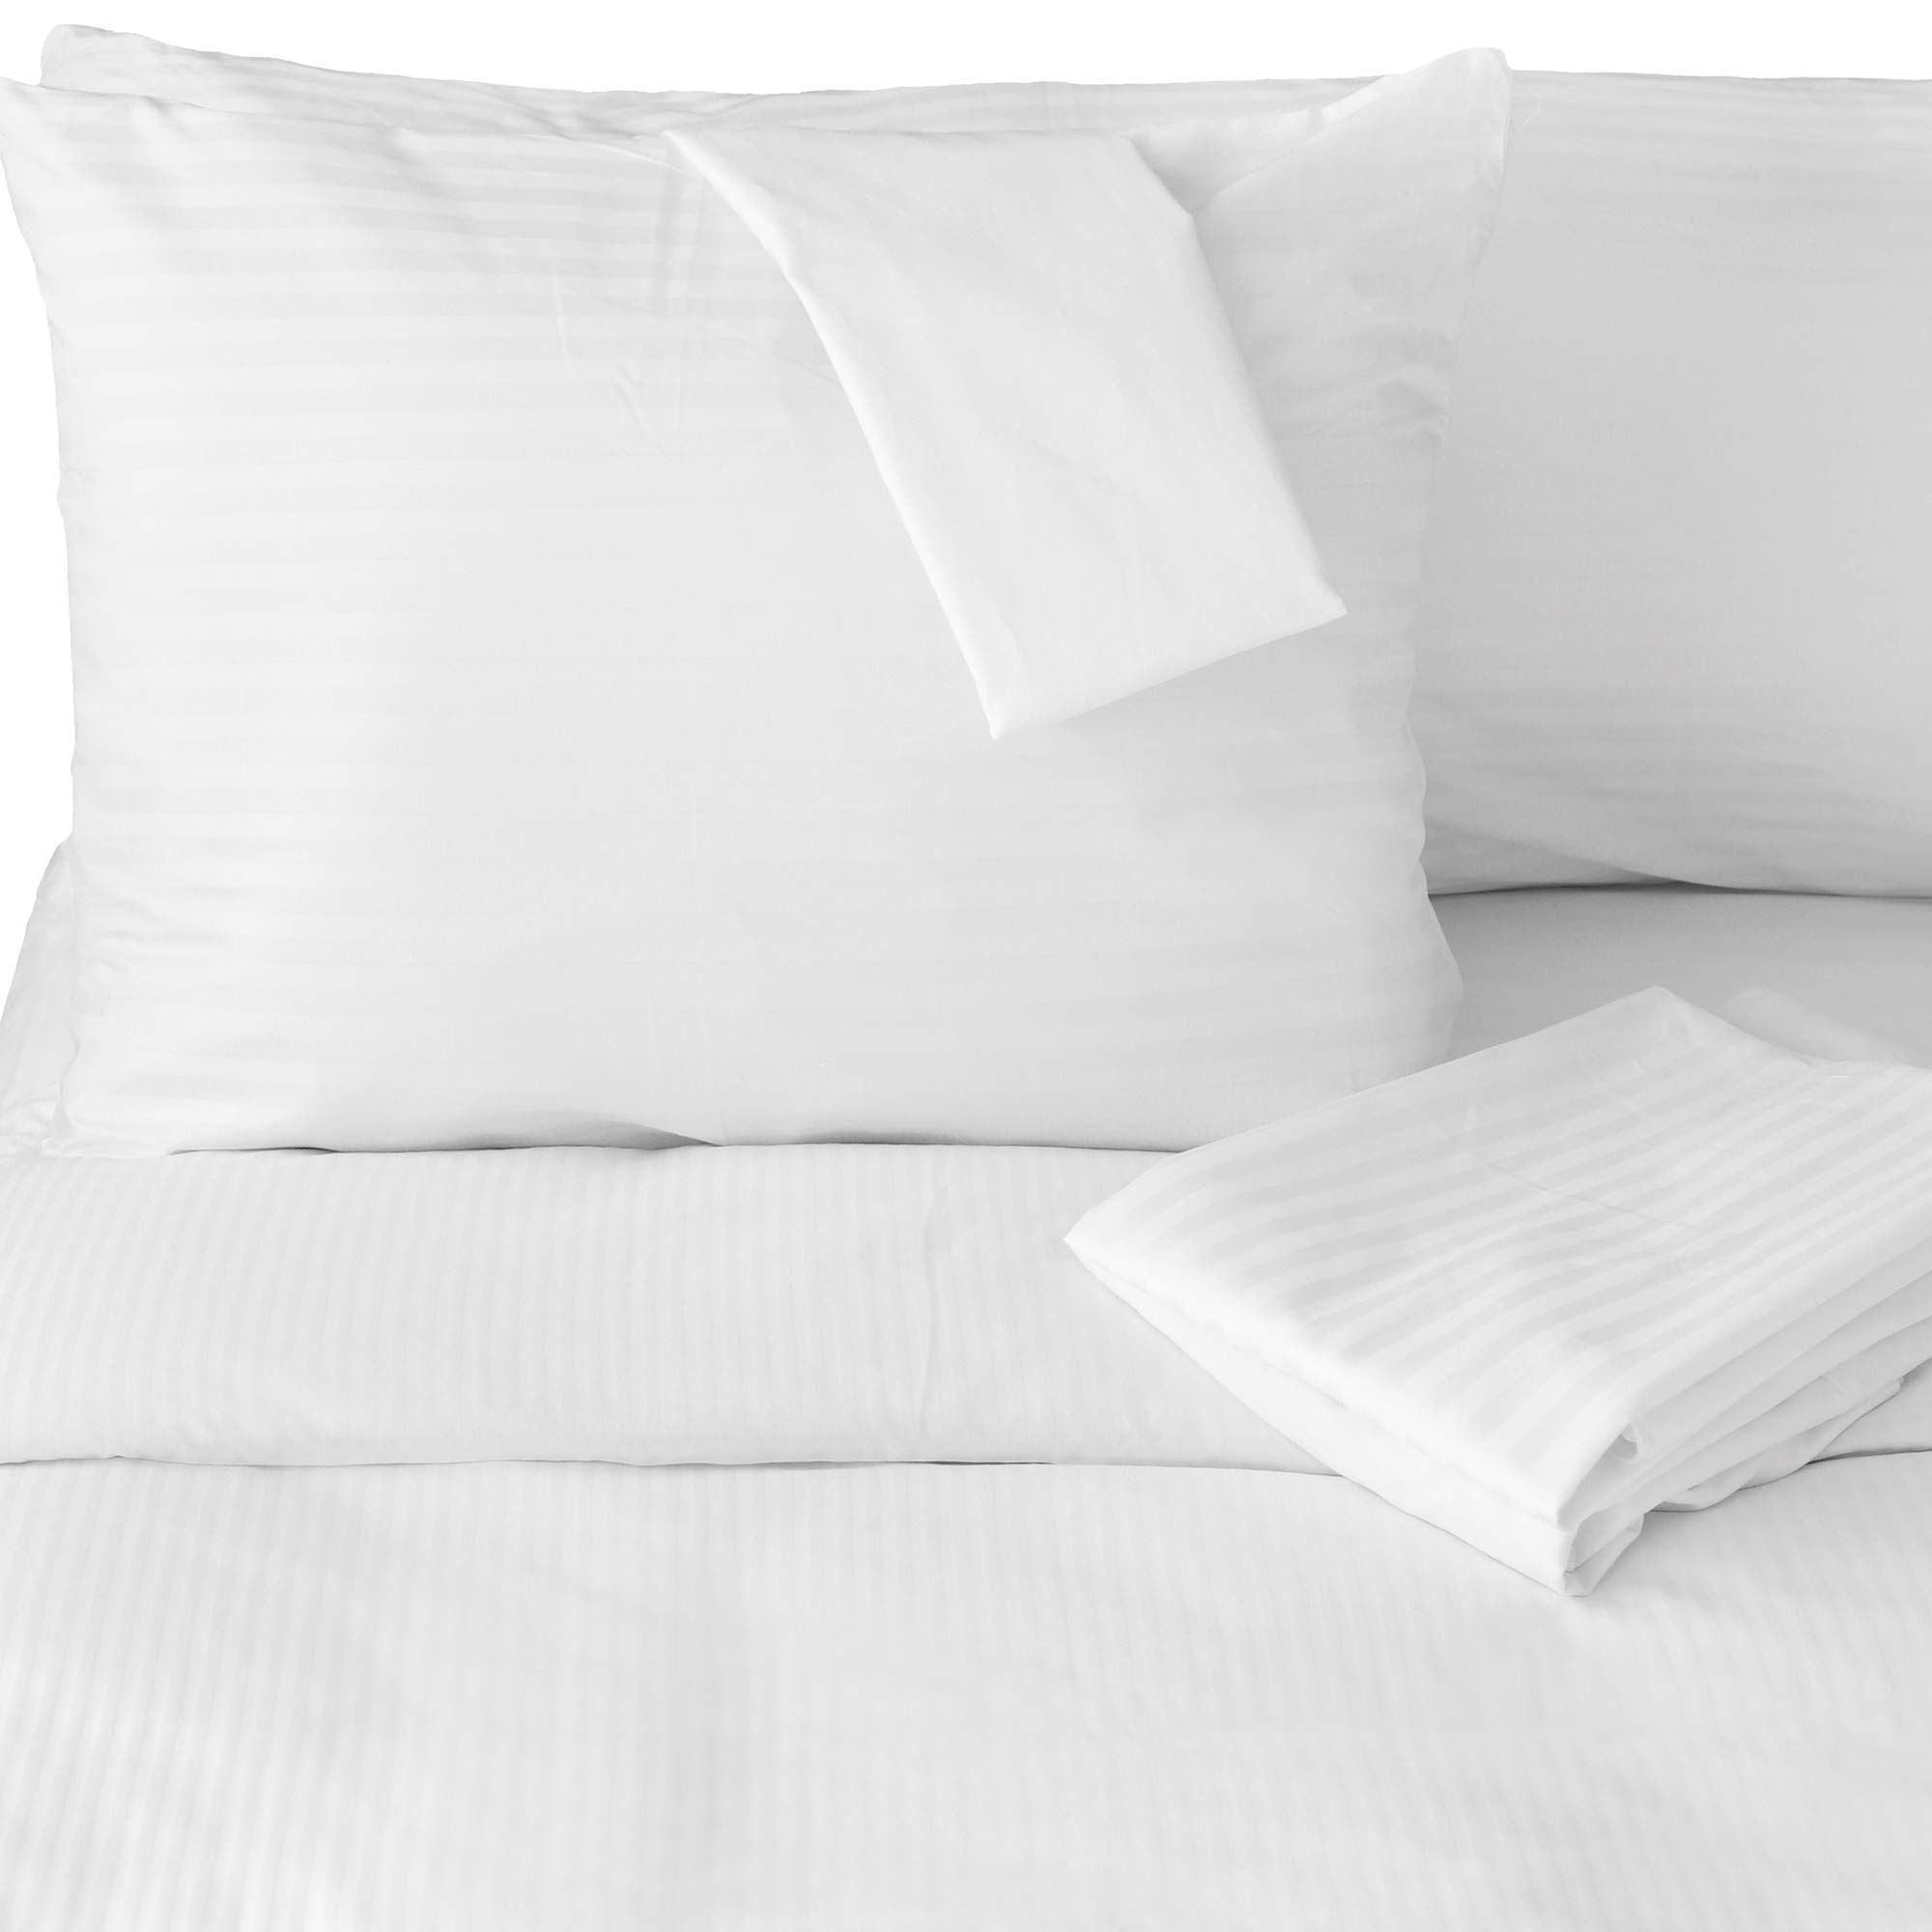 ALLERGY ZIPPED COVER 2PCS ALLERGY FREE Pillow Protectors Dust mite ANTI BUG